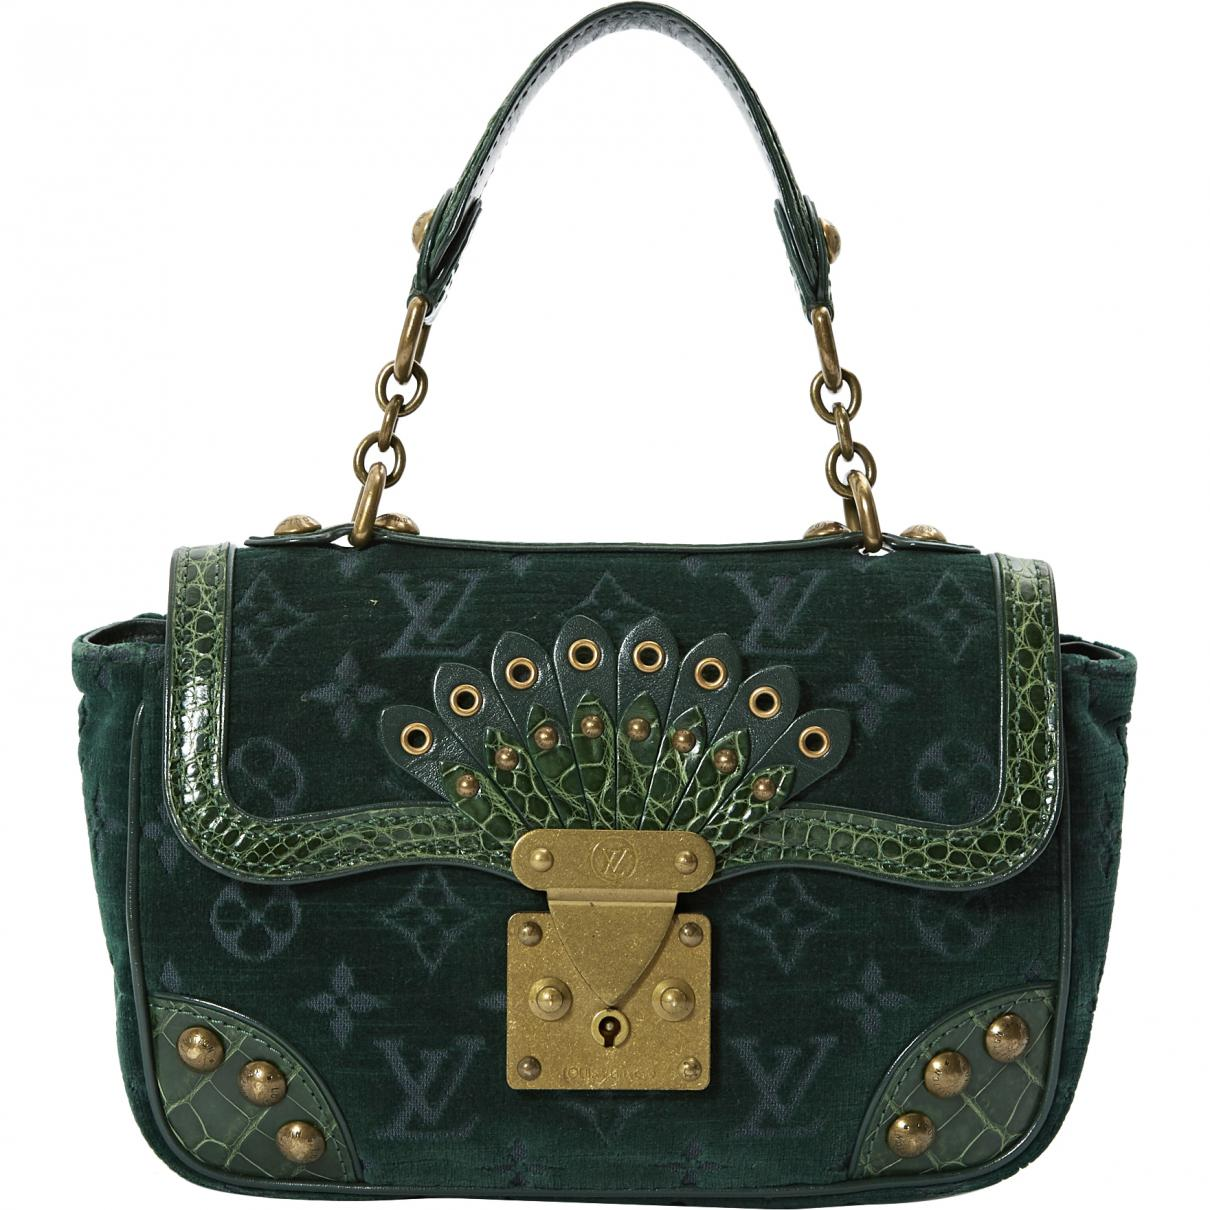 Louis Vuitton Pre-owned - Velvet handbag BjUo6